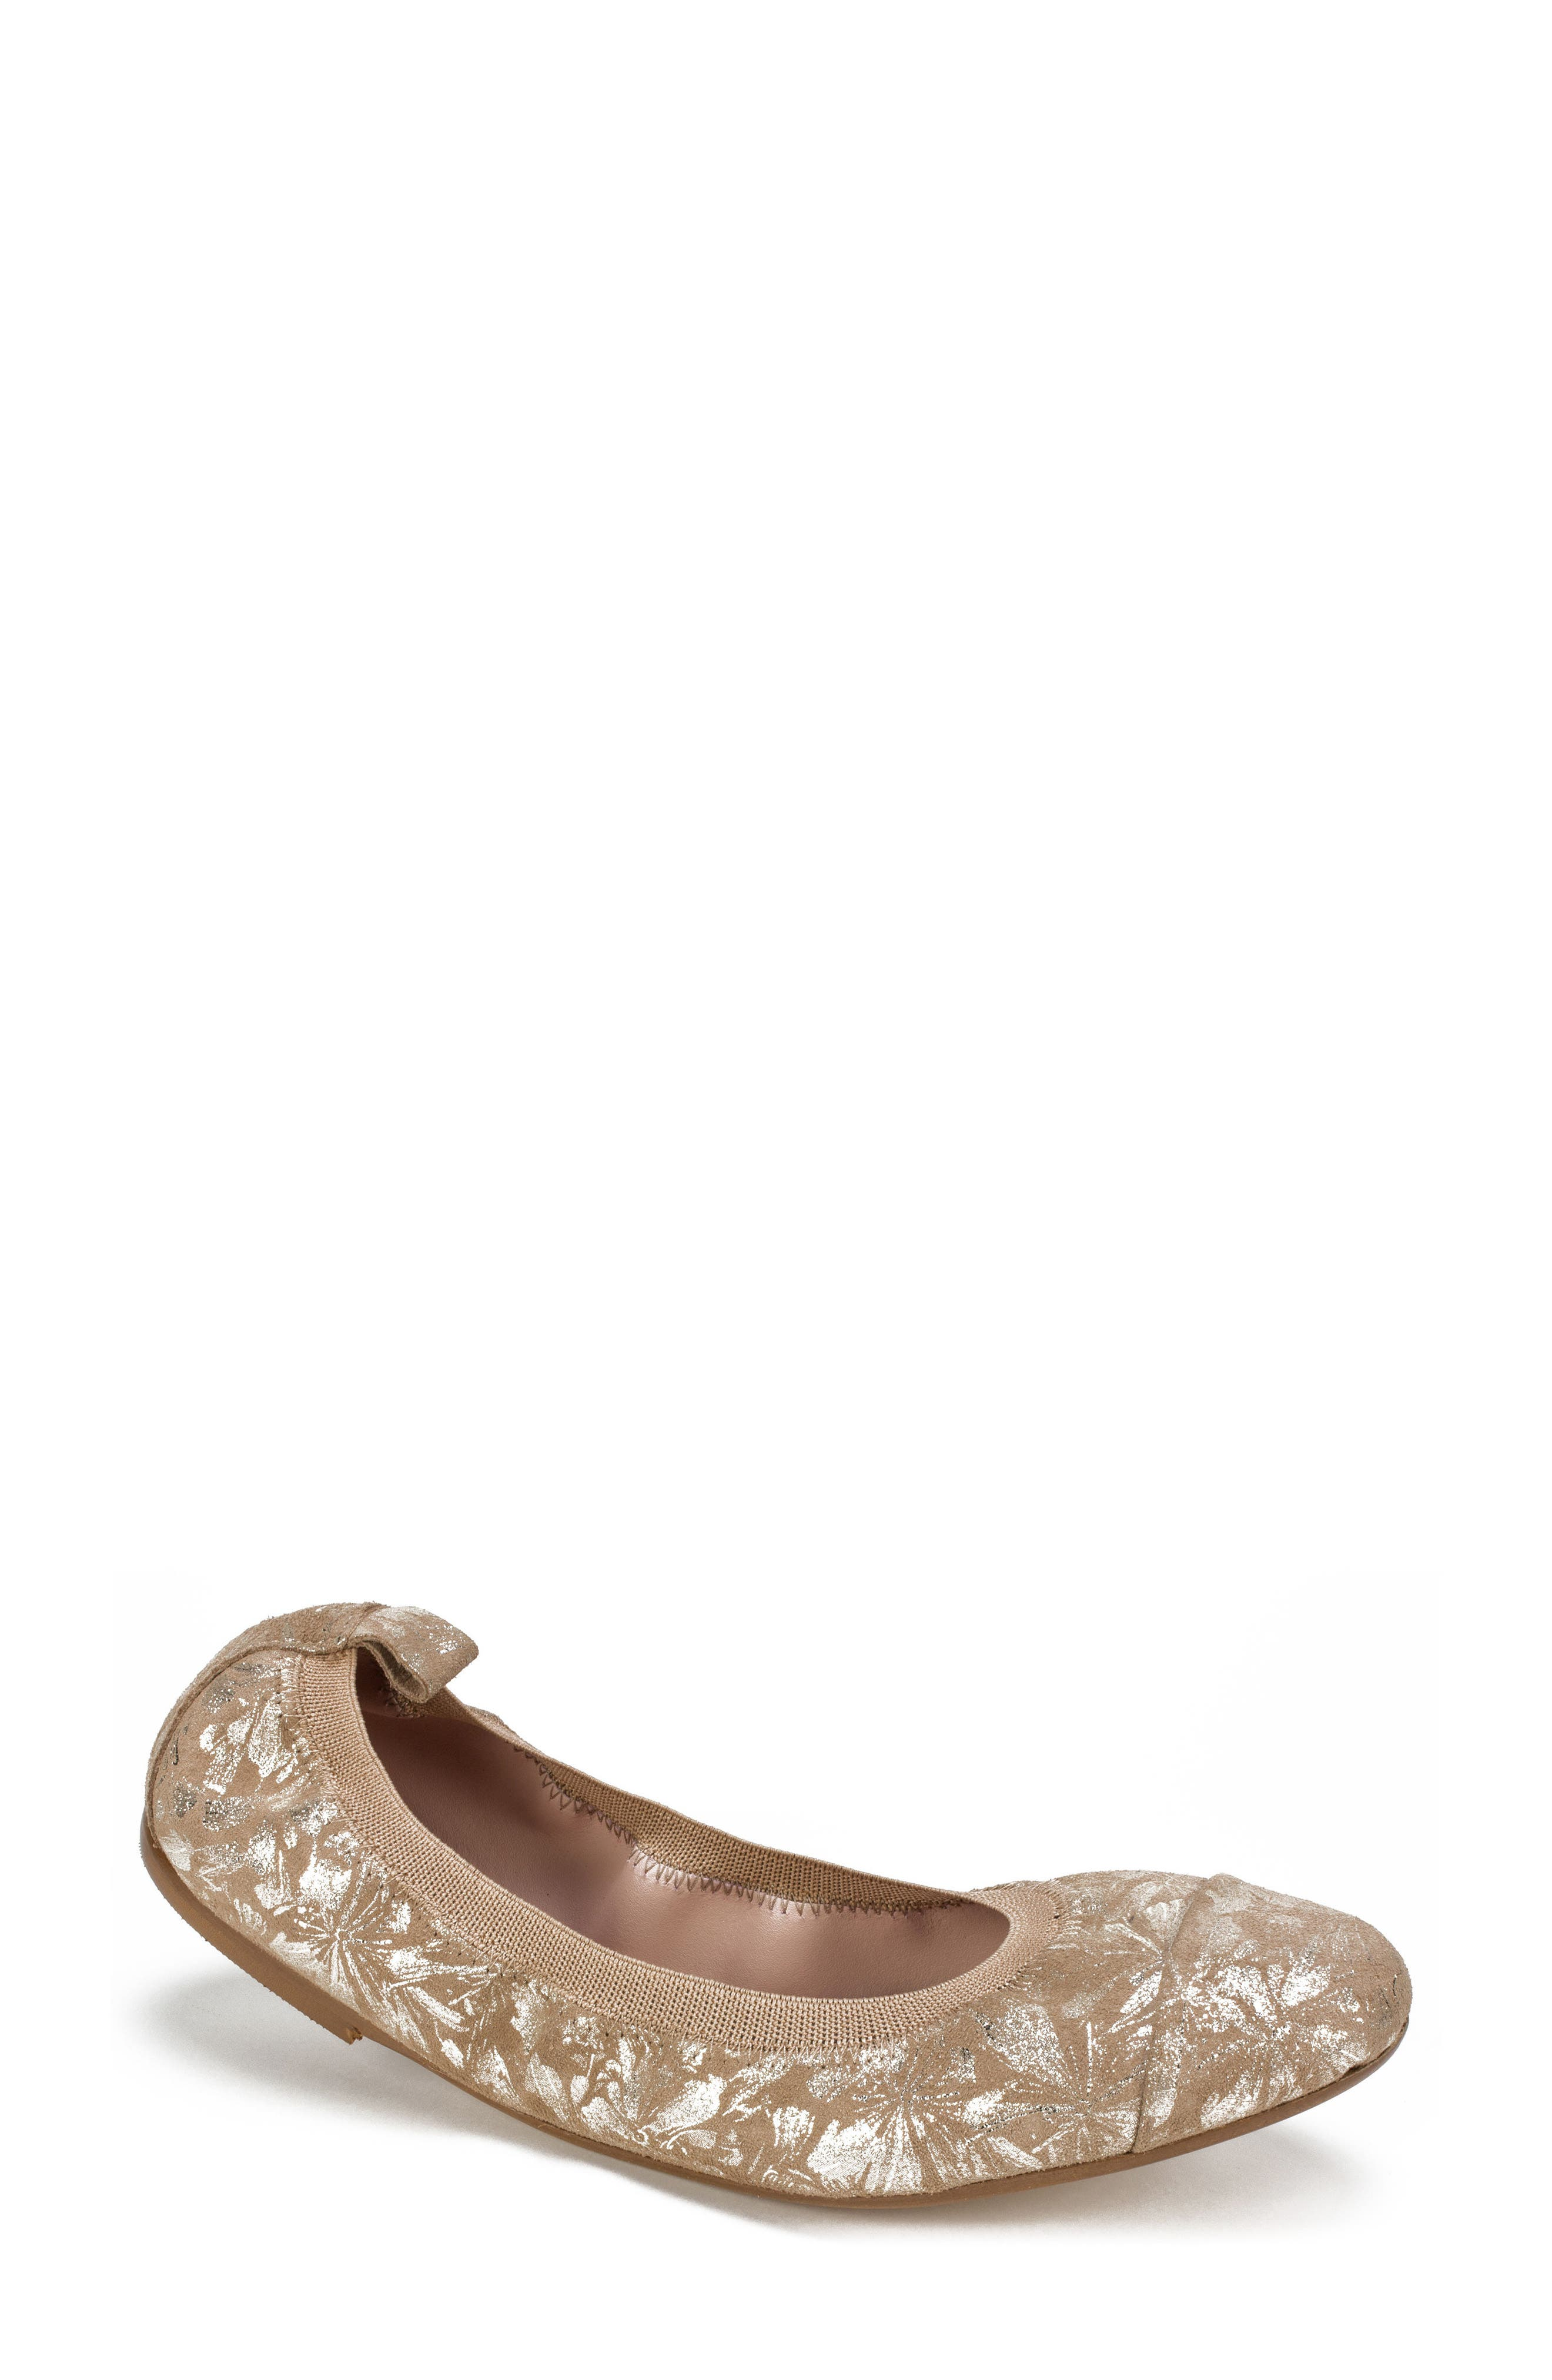 Summit Kara Ballet Flat, Brown